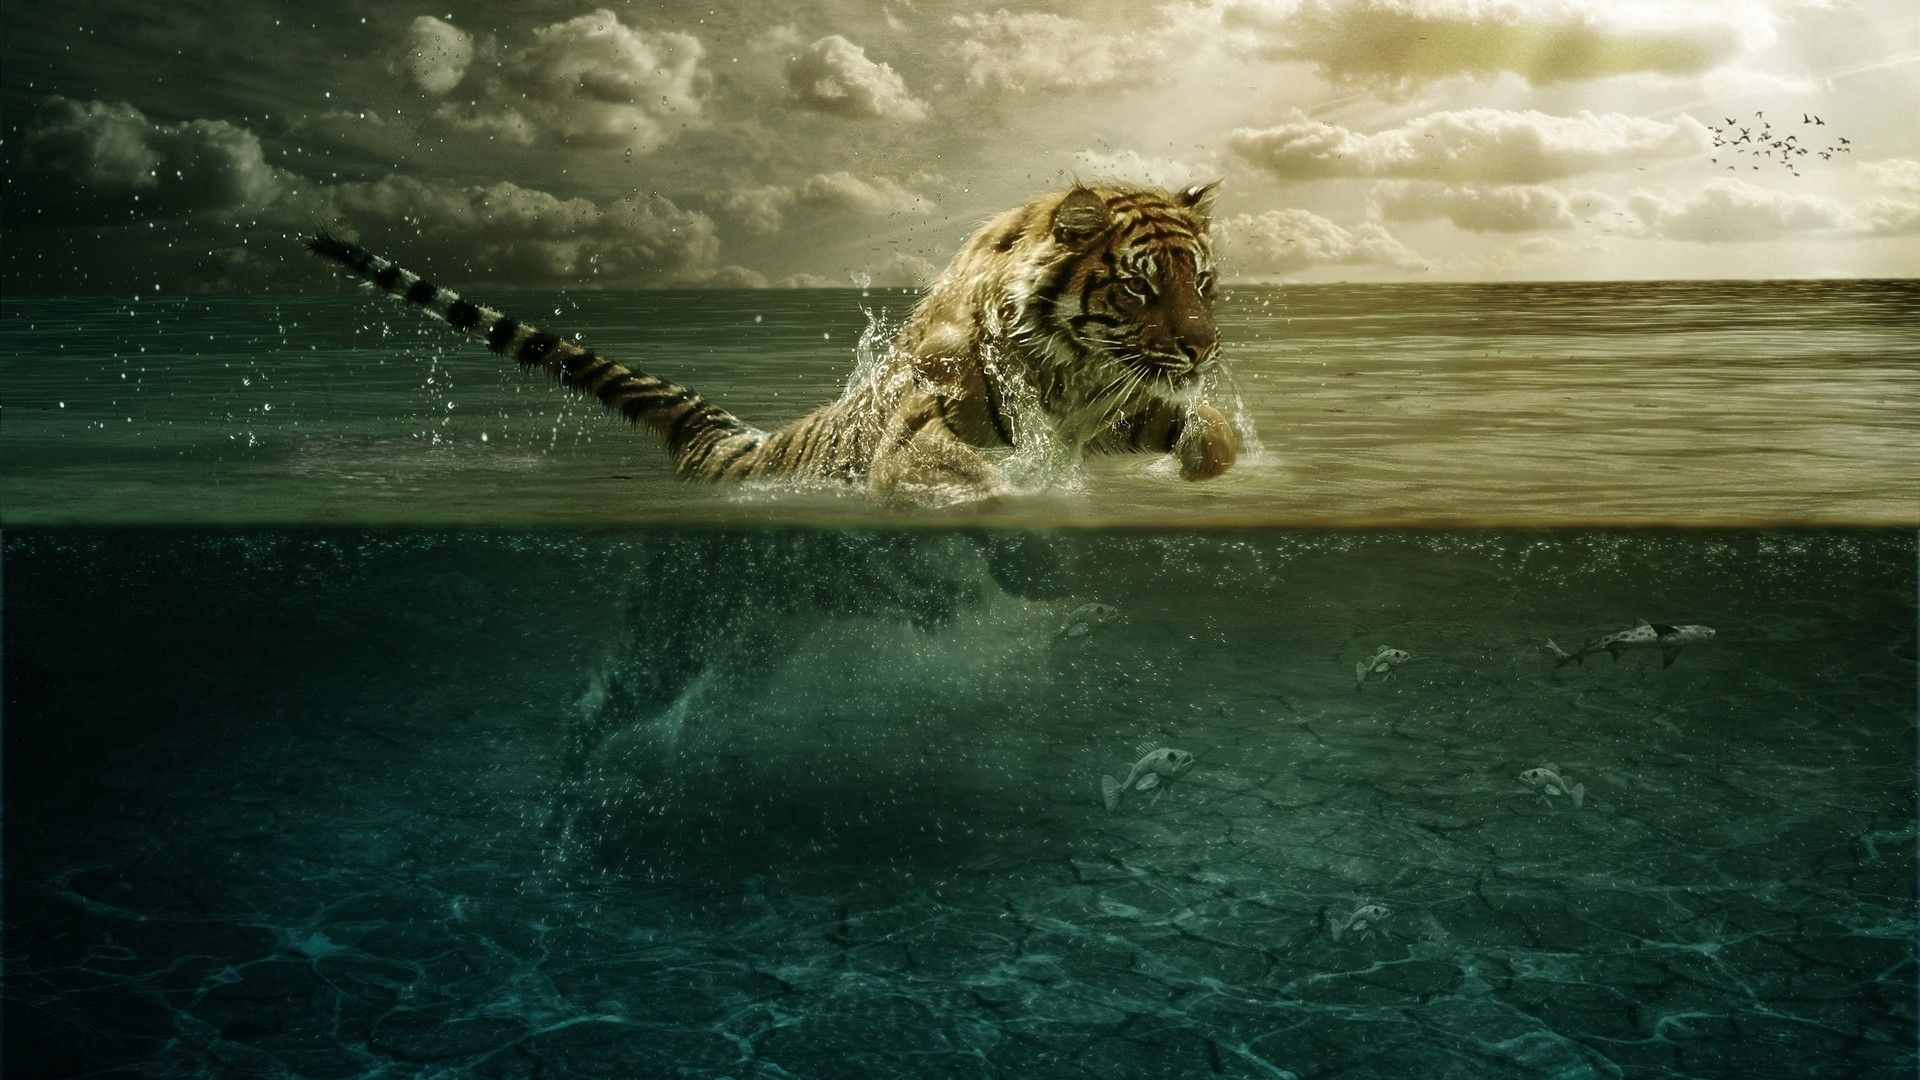 Tiger Wallpapers Desktop Background Animals Wallpapers Tiger 1920x1080